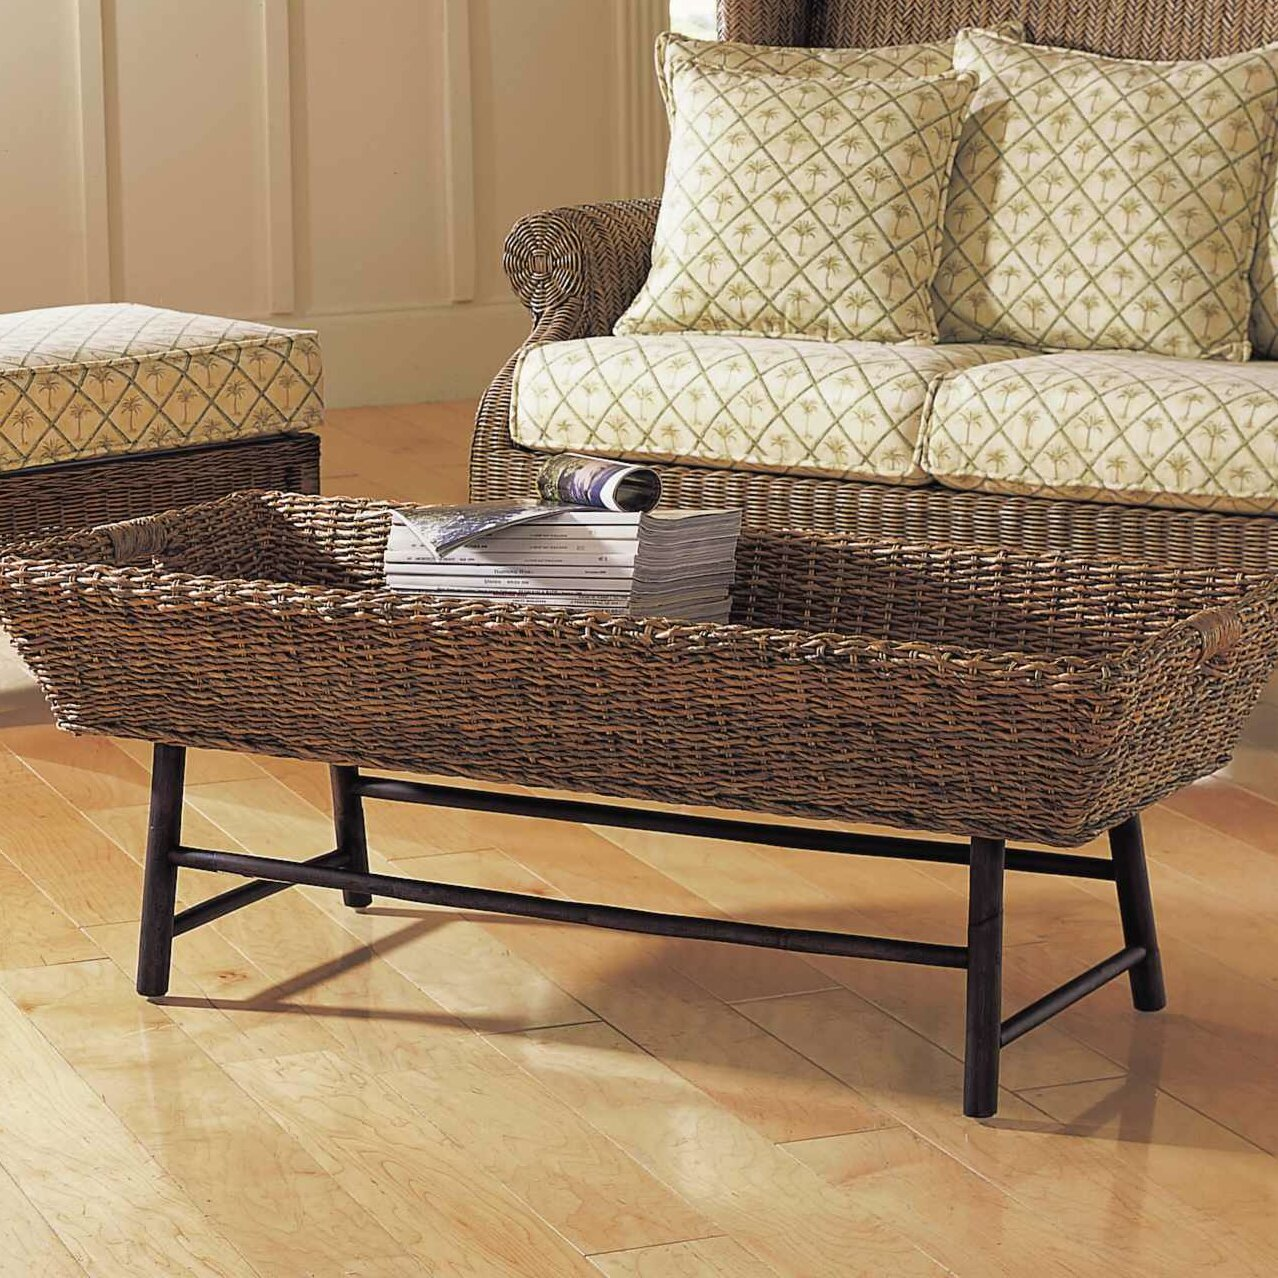 Padmas plantation basket coffee table reviews wayfair Coffee table baskets